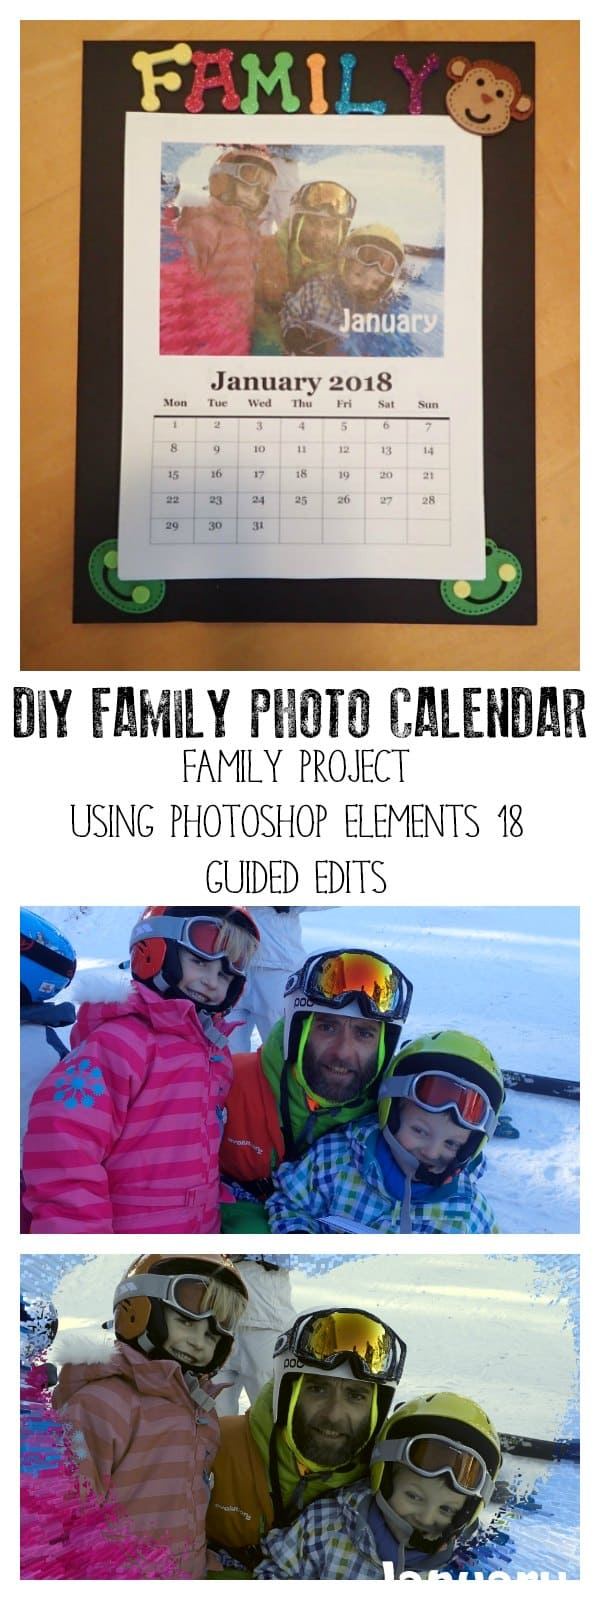 Diy Family Calendar : Diy family photo calendar